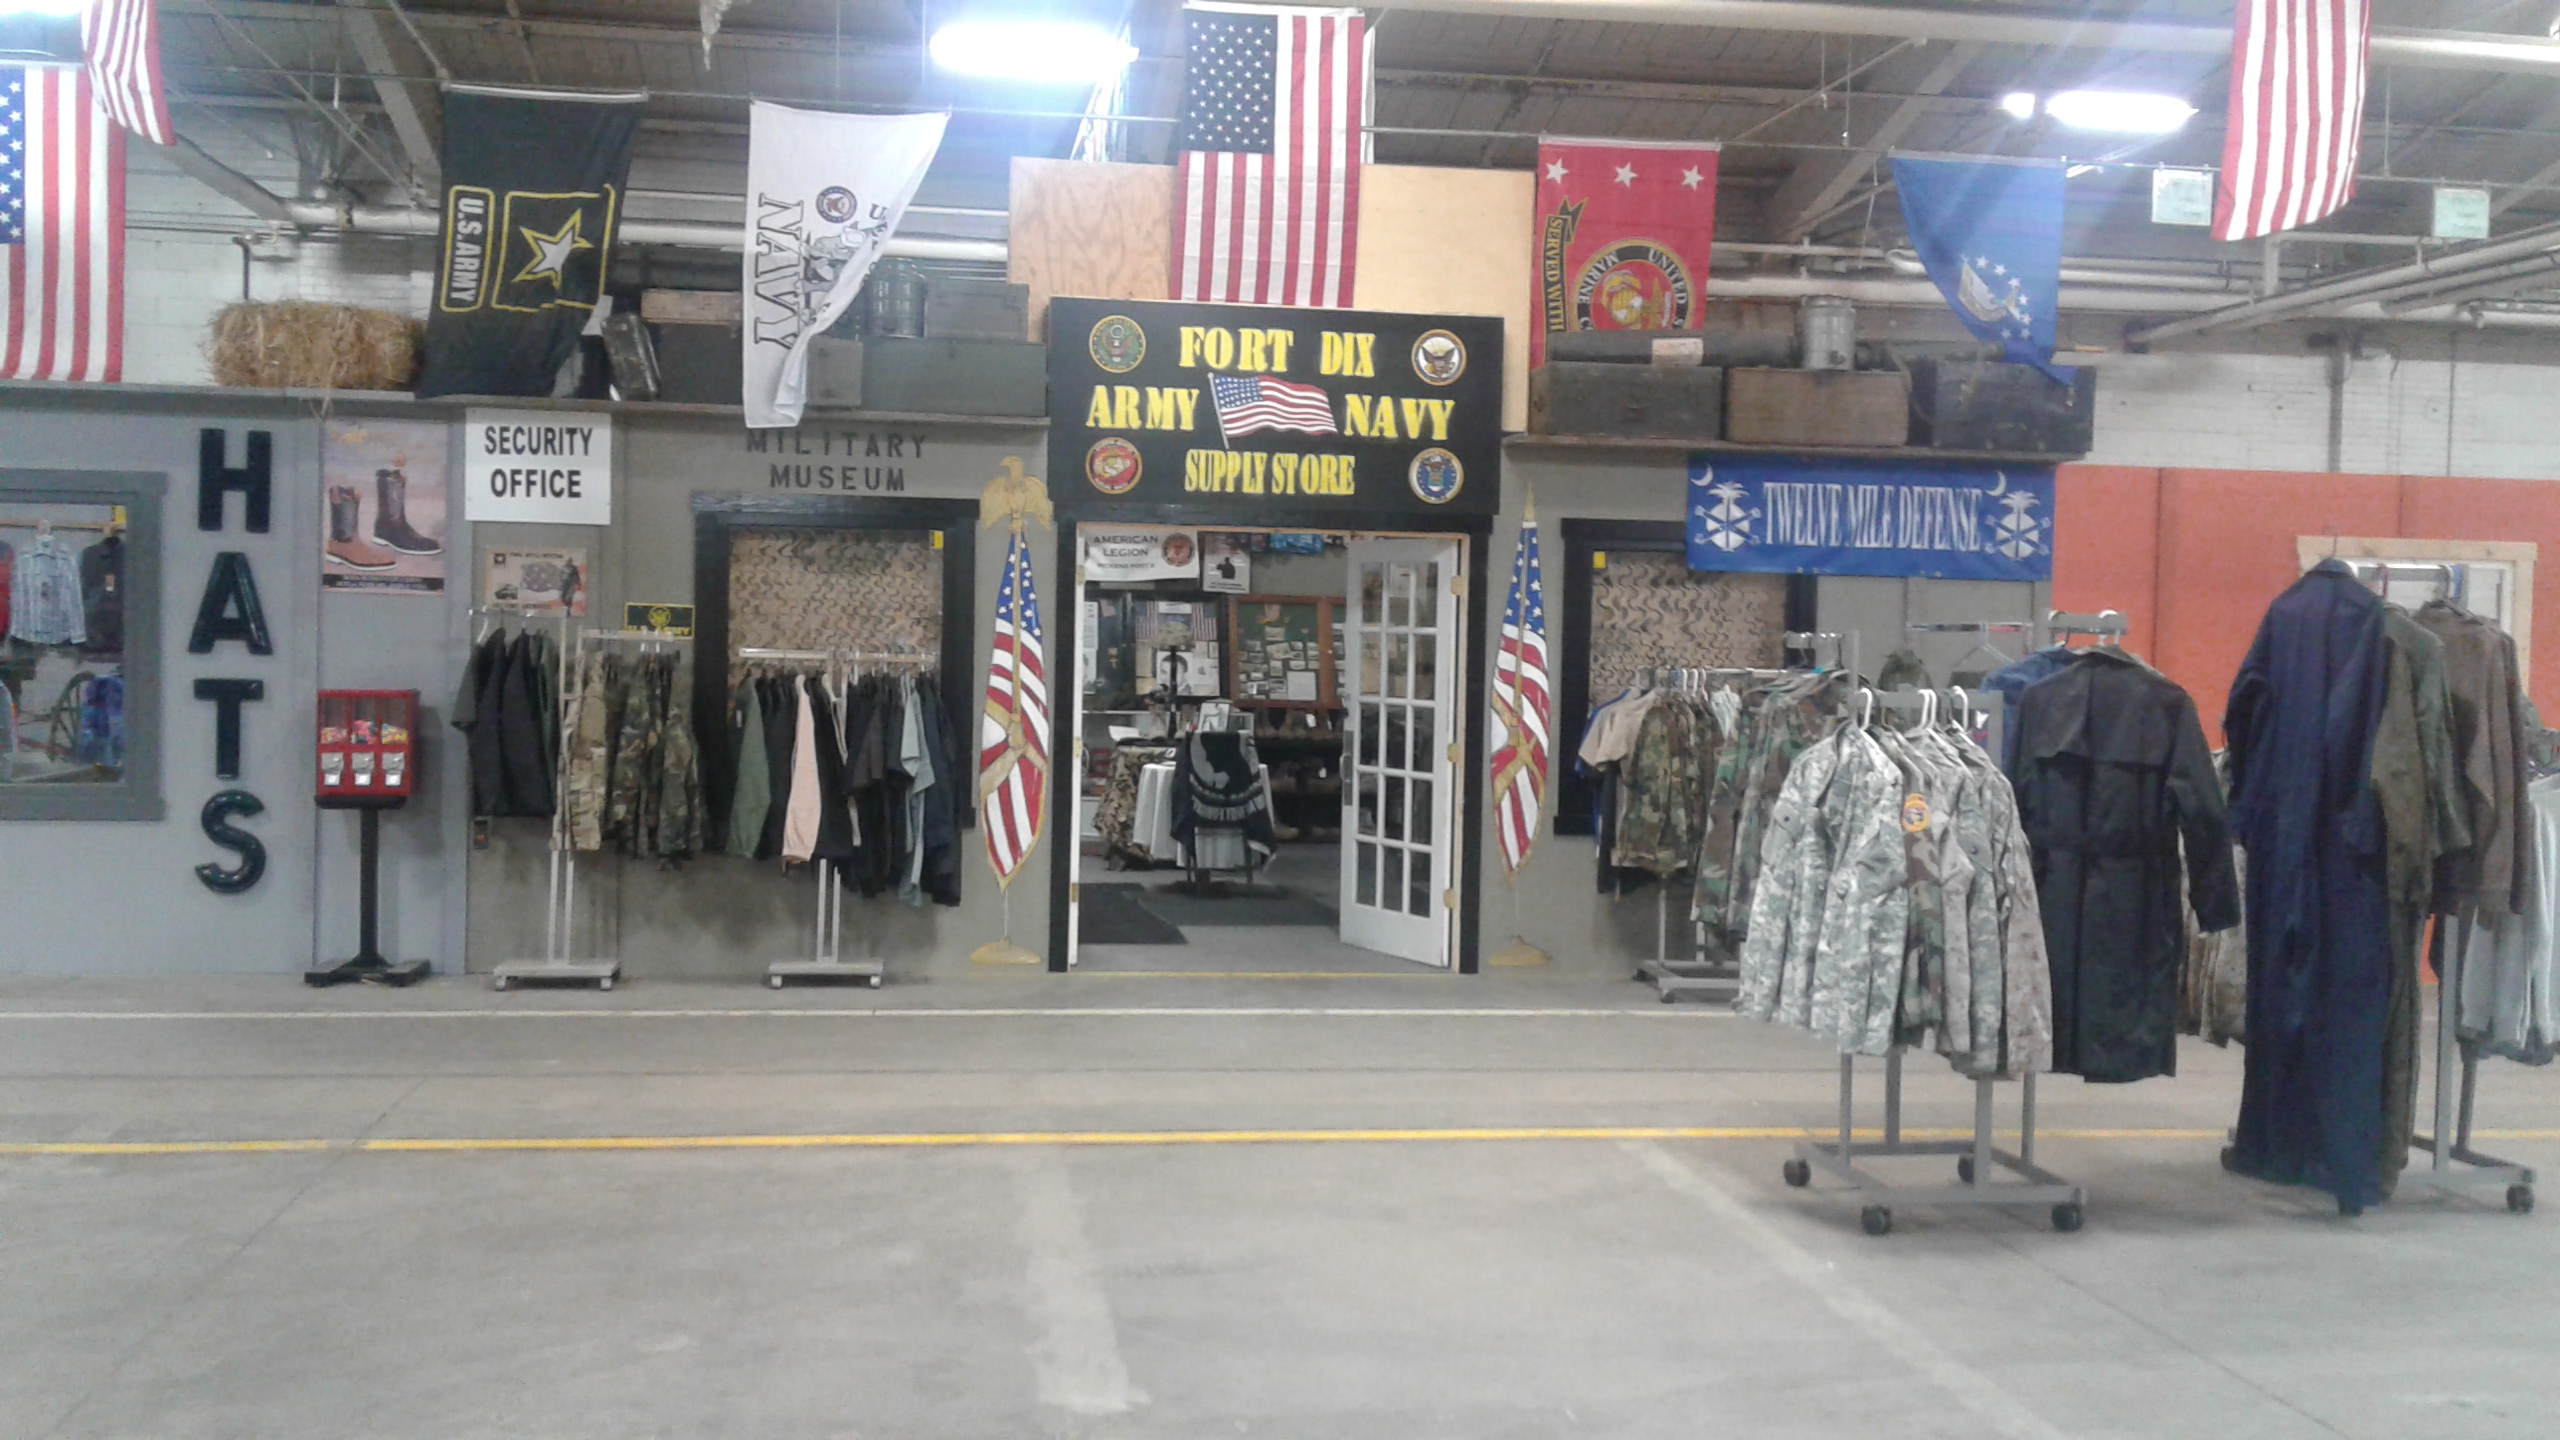 Fort Dix Army/Navy Store – Warehouse 3